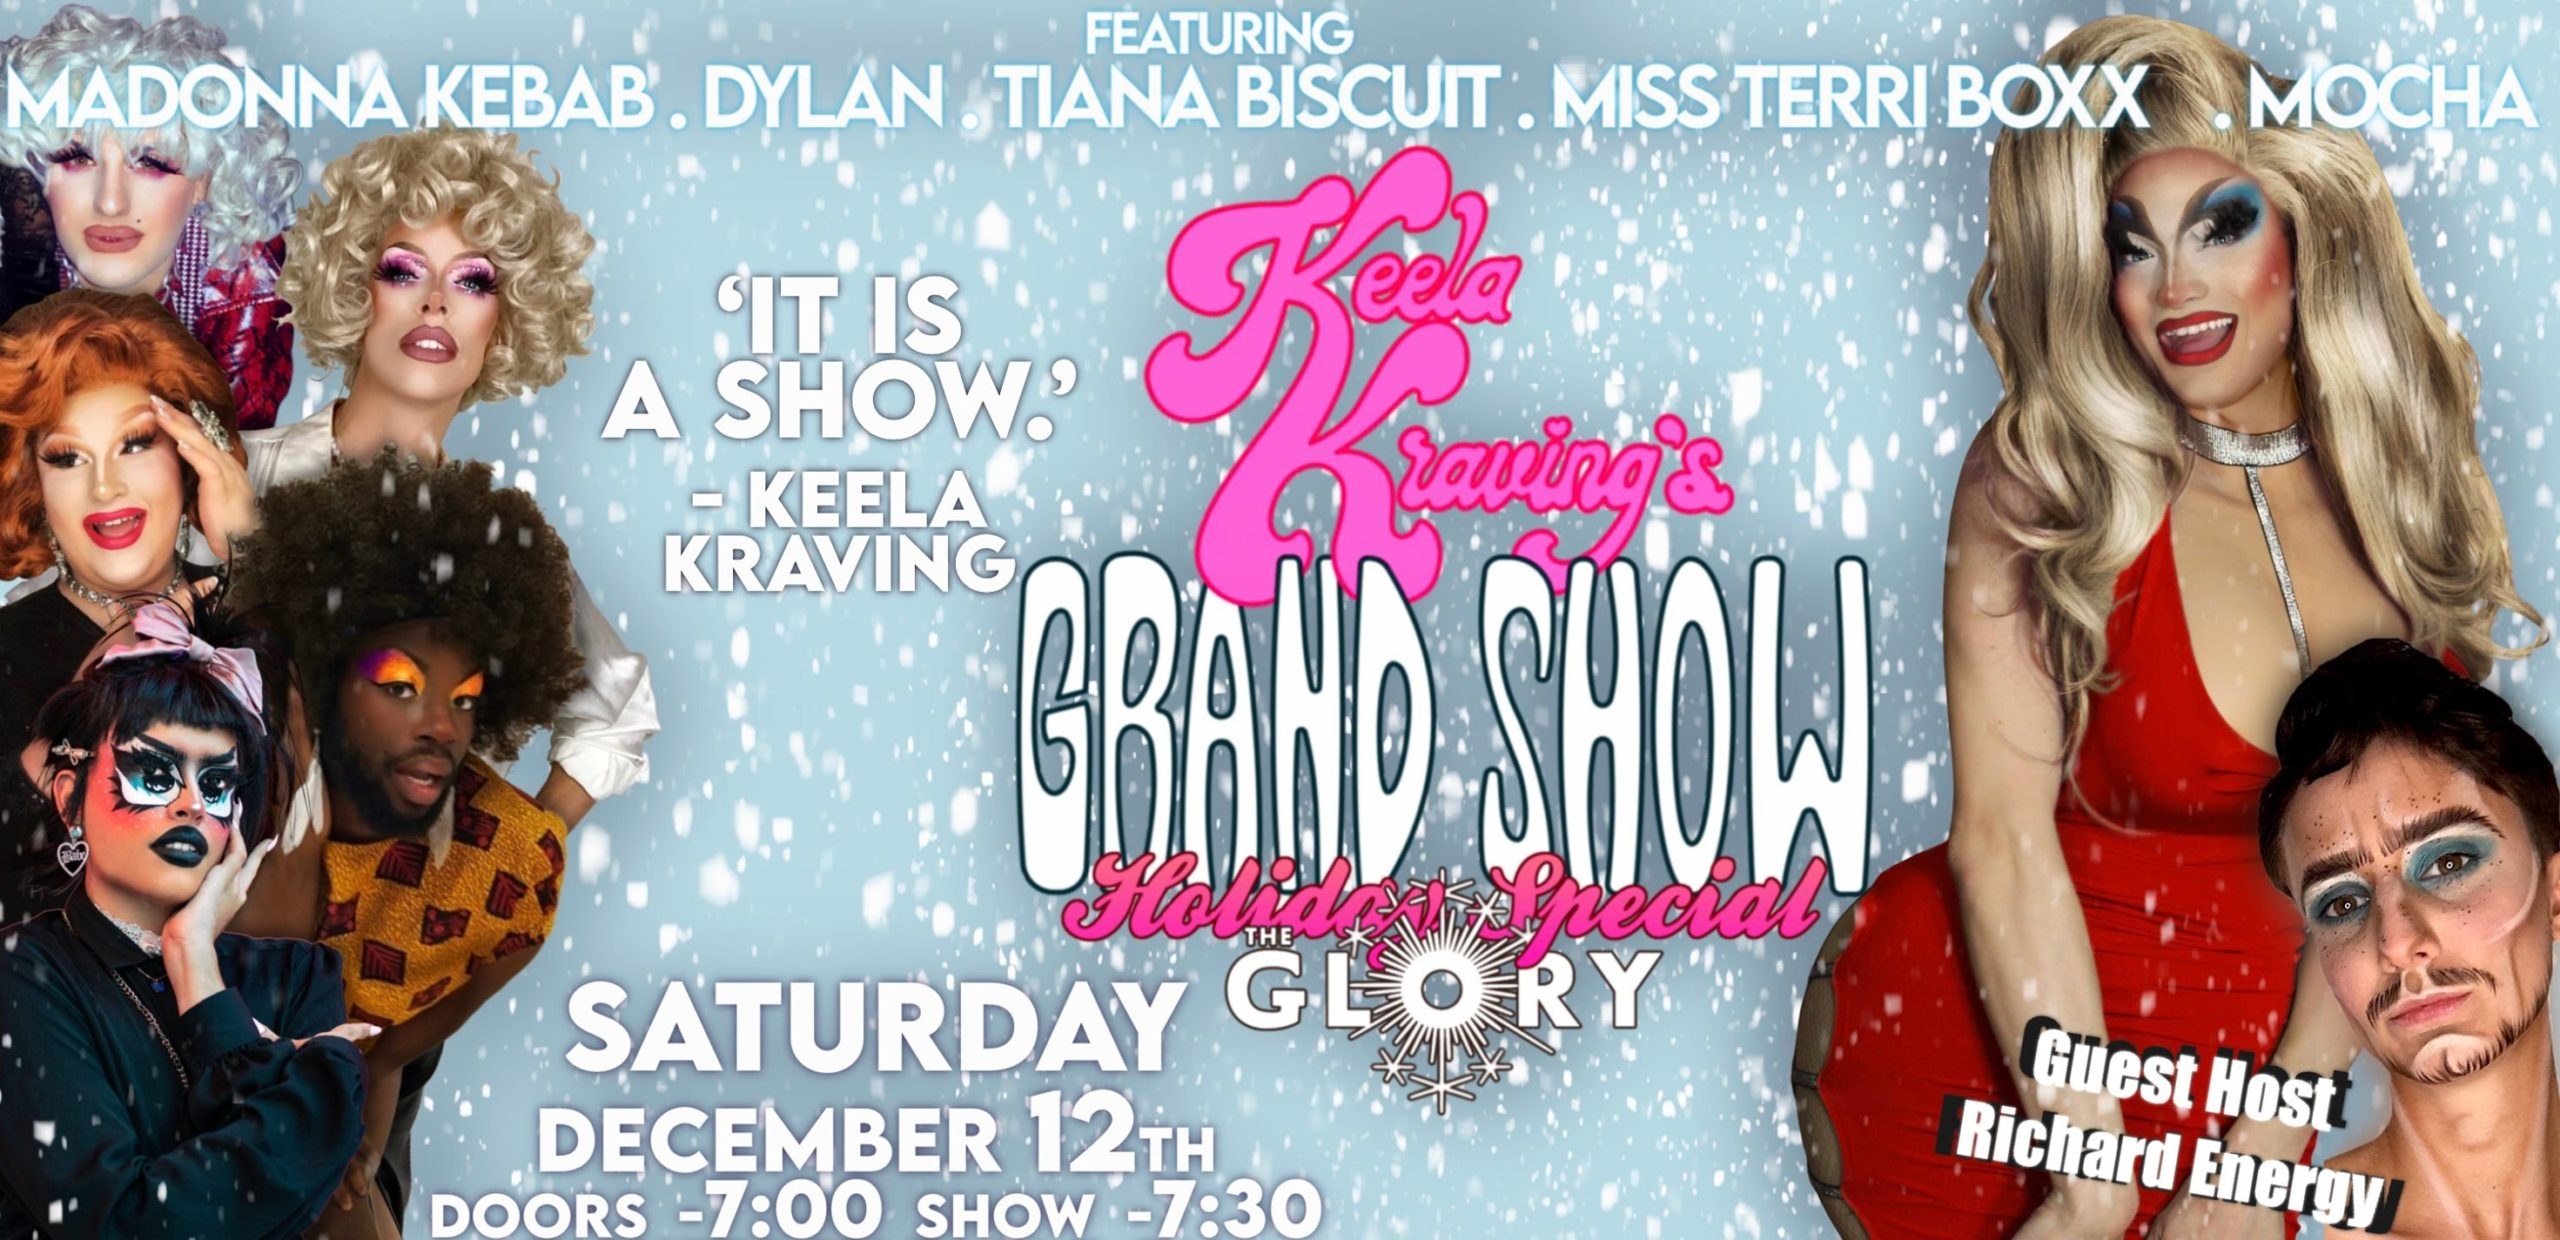 Keela Kraving's Grand Show! HOLIDAY SPECIAL